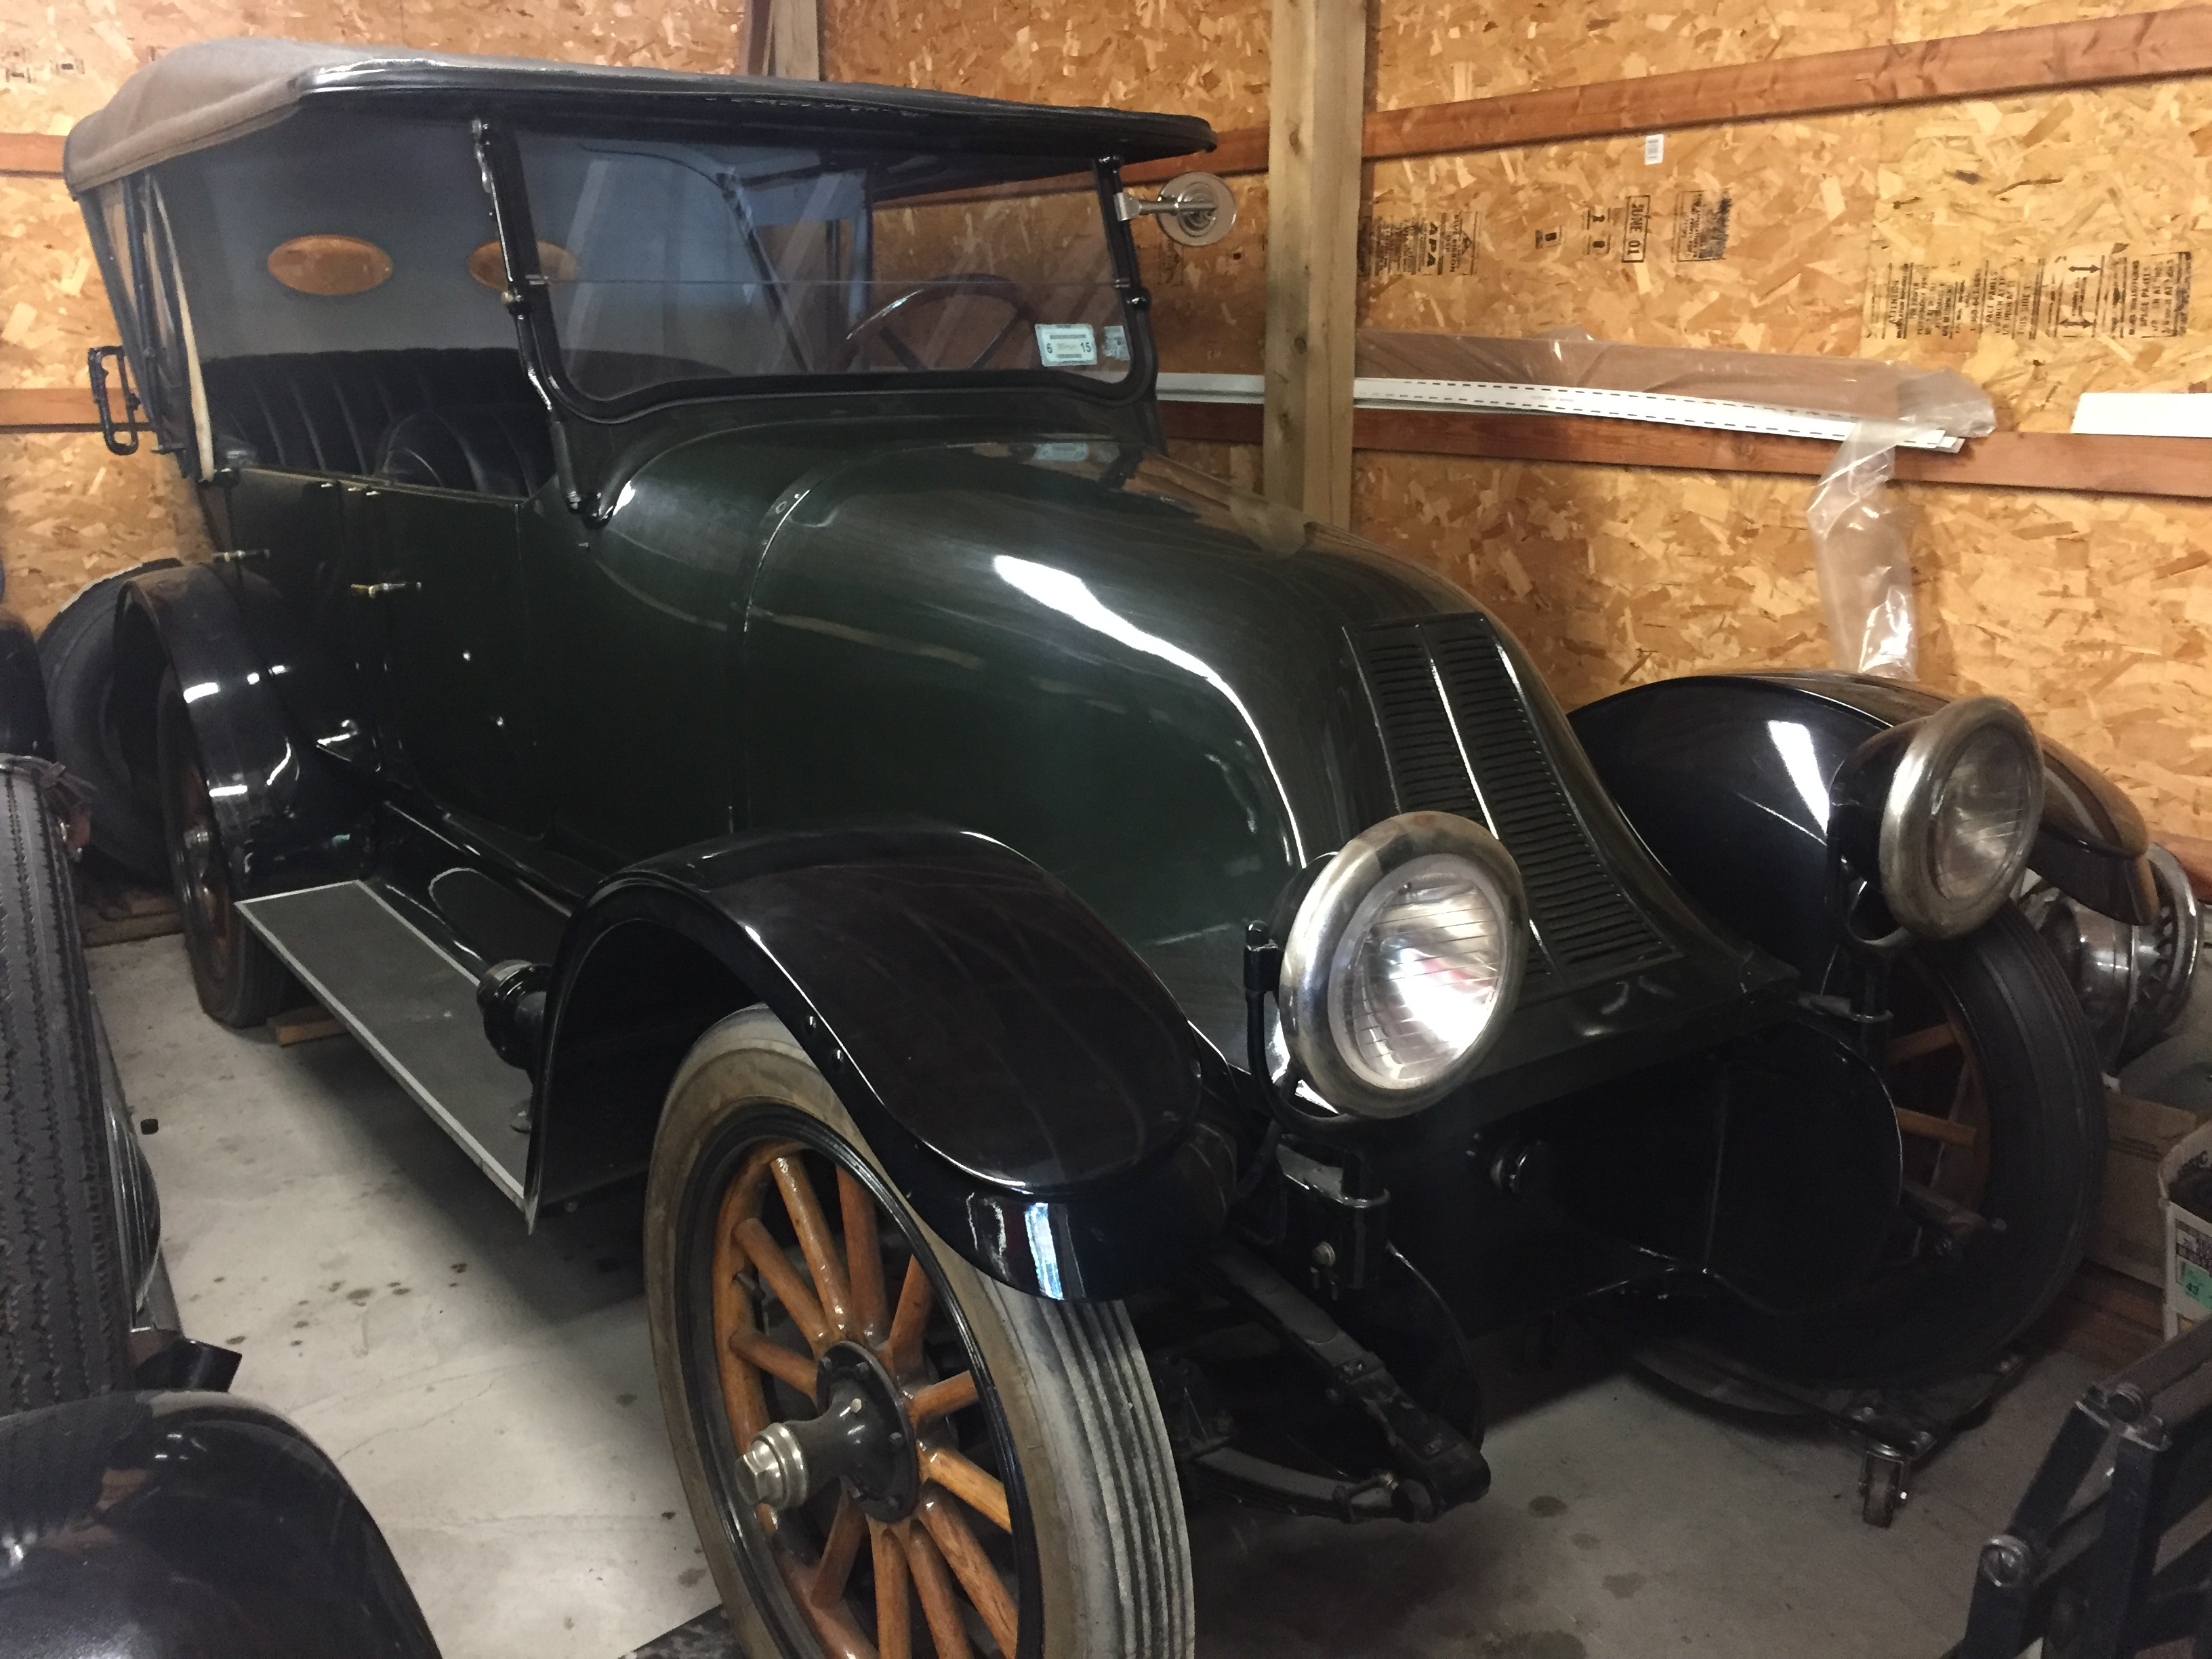 Franklin Touring car 1912 to 1919 - Franklin Buy/Sell - Antique ...